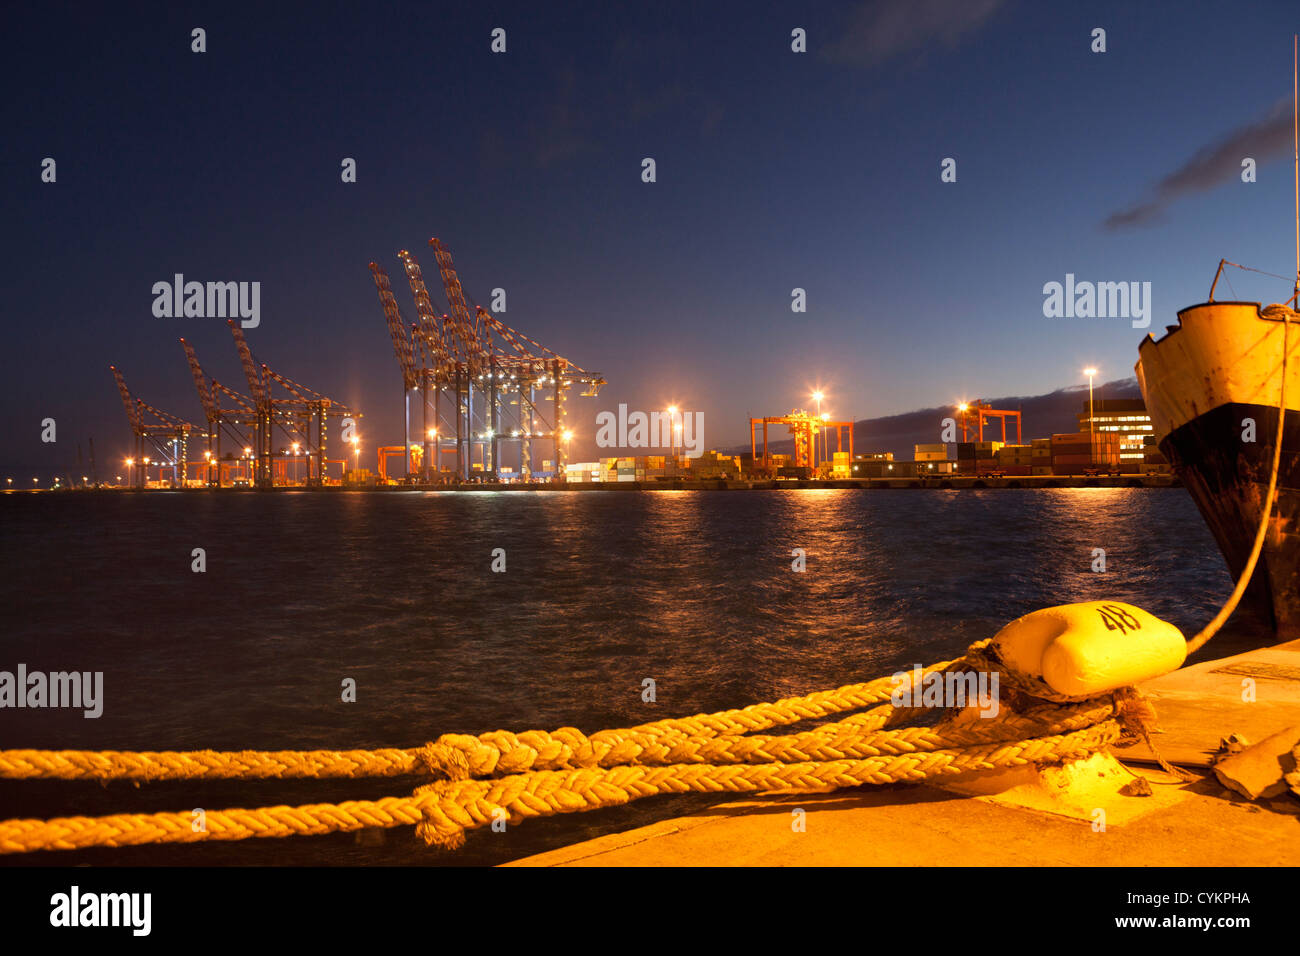 Rope docking ship in shipyard - Stock Image